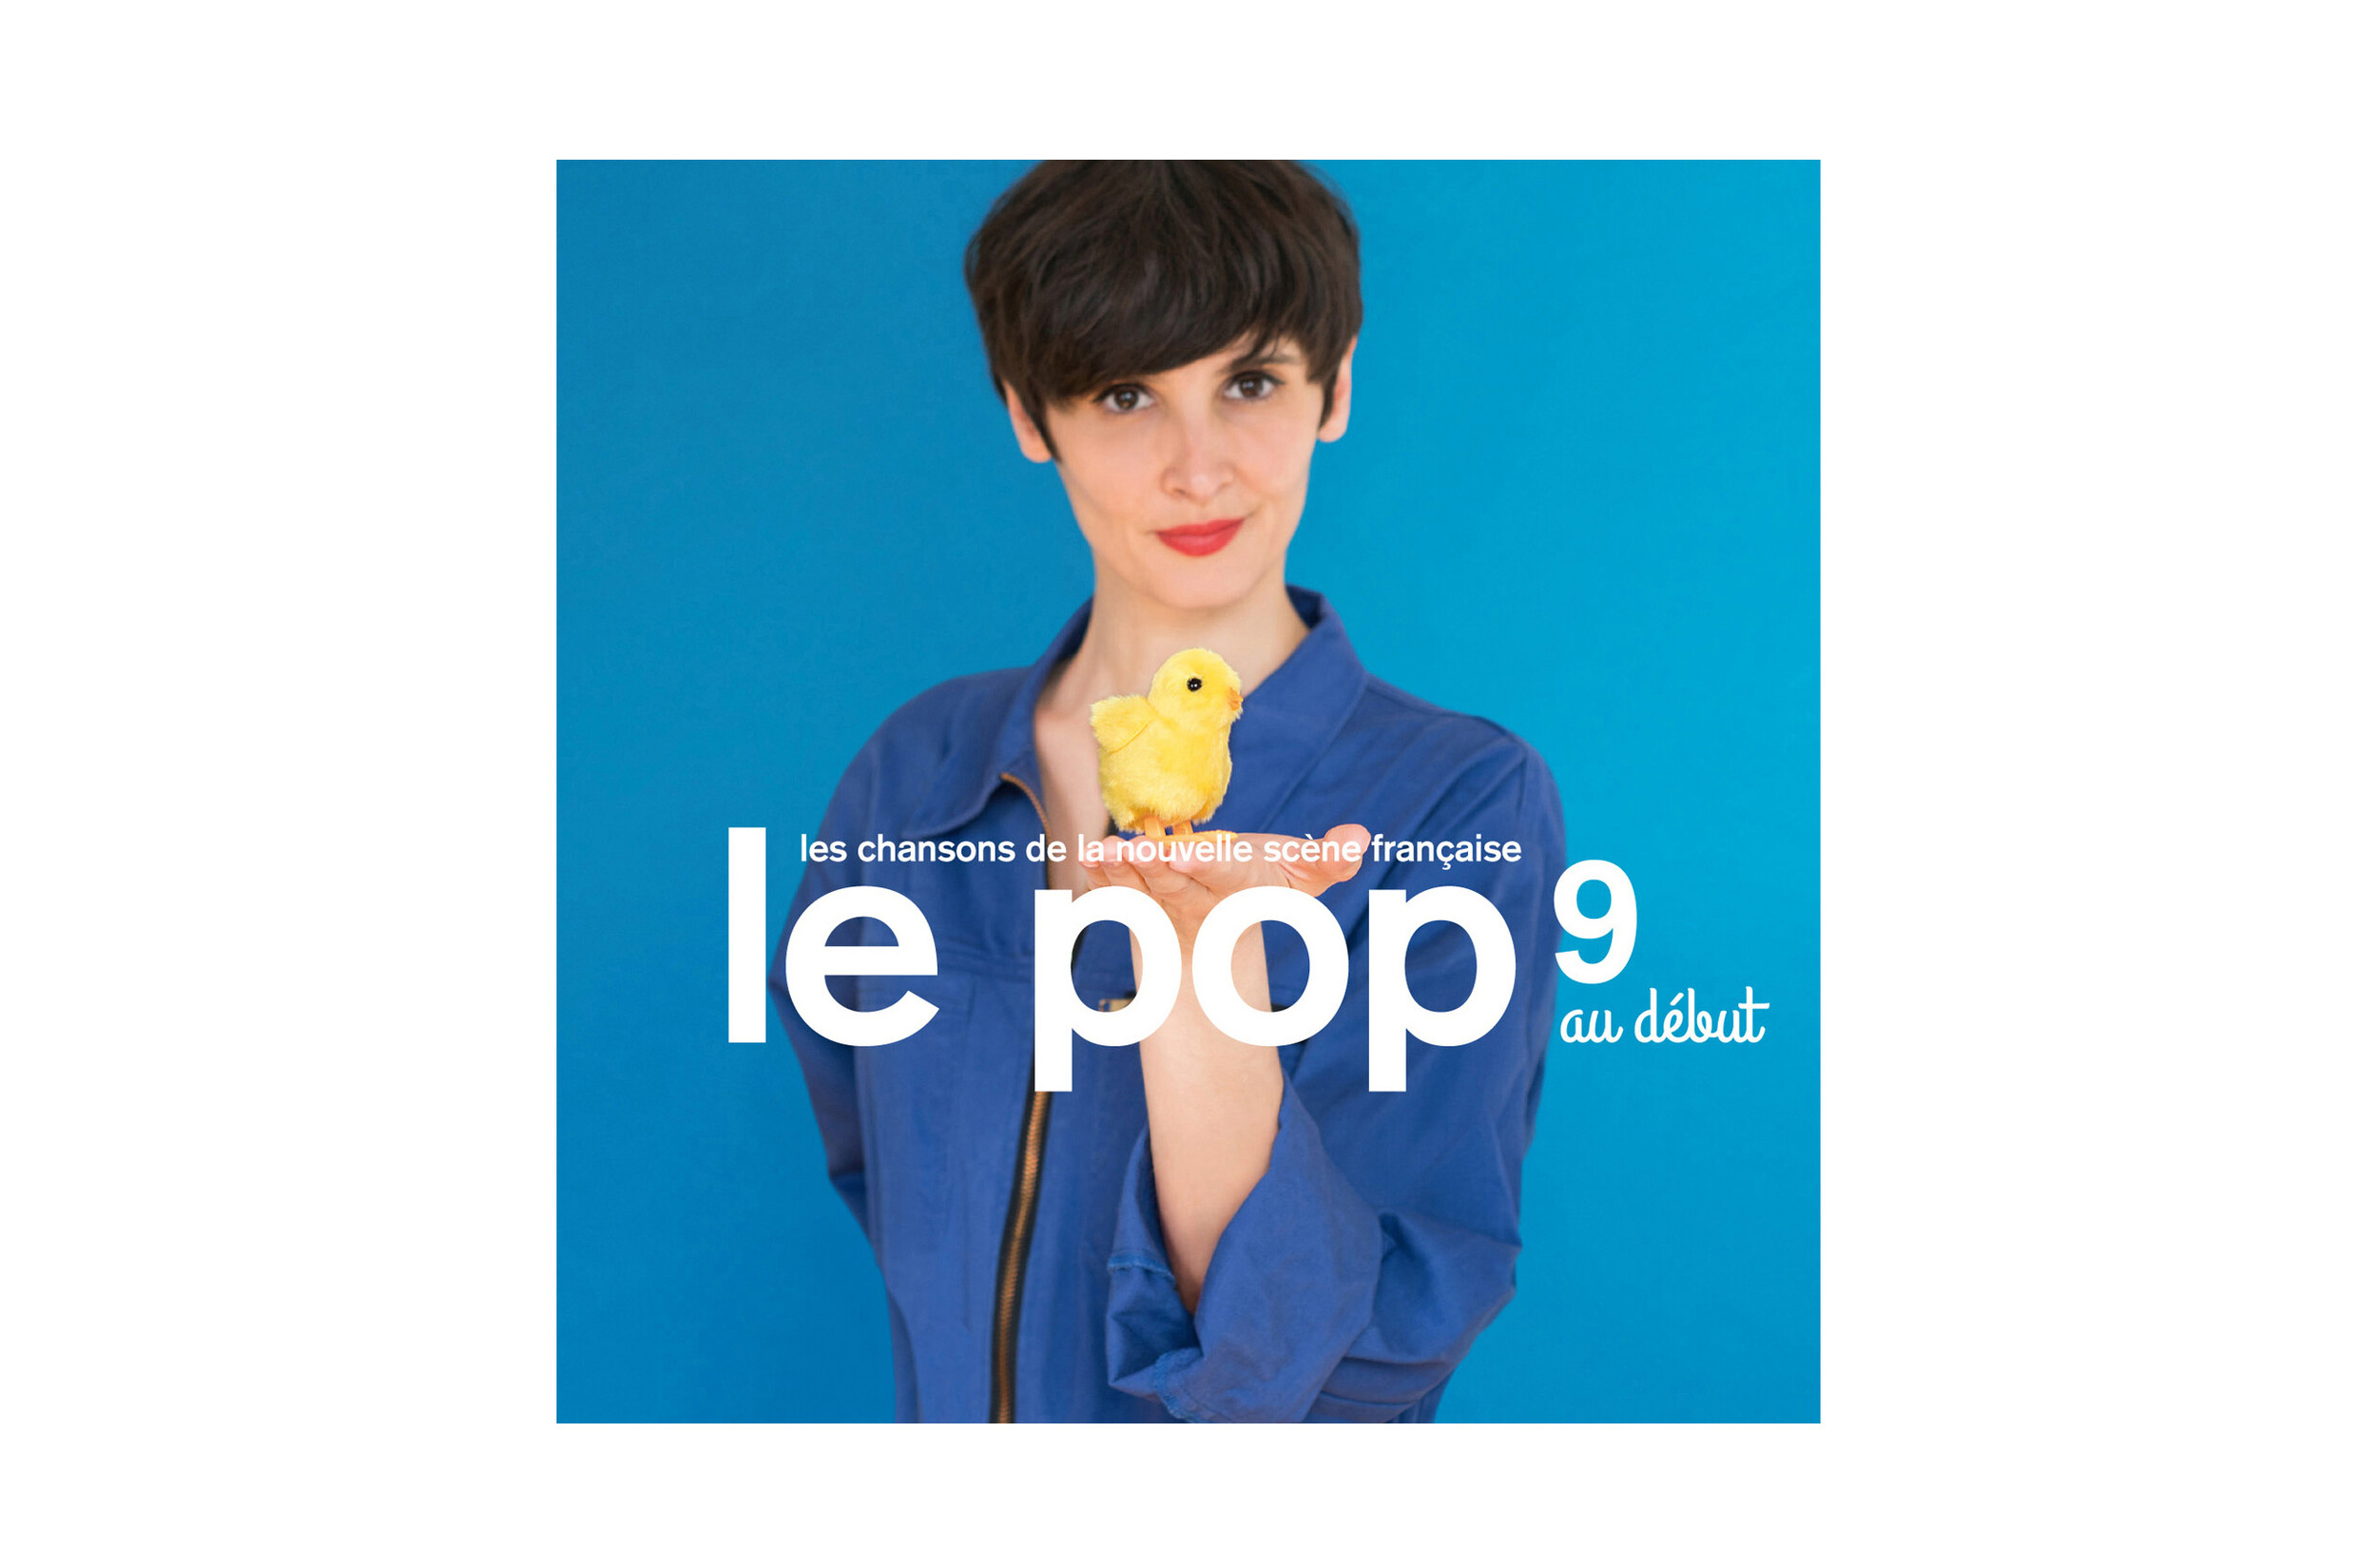 Le Pop9, Covershooting, Köln